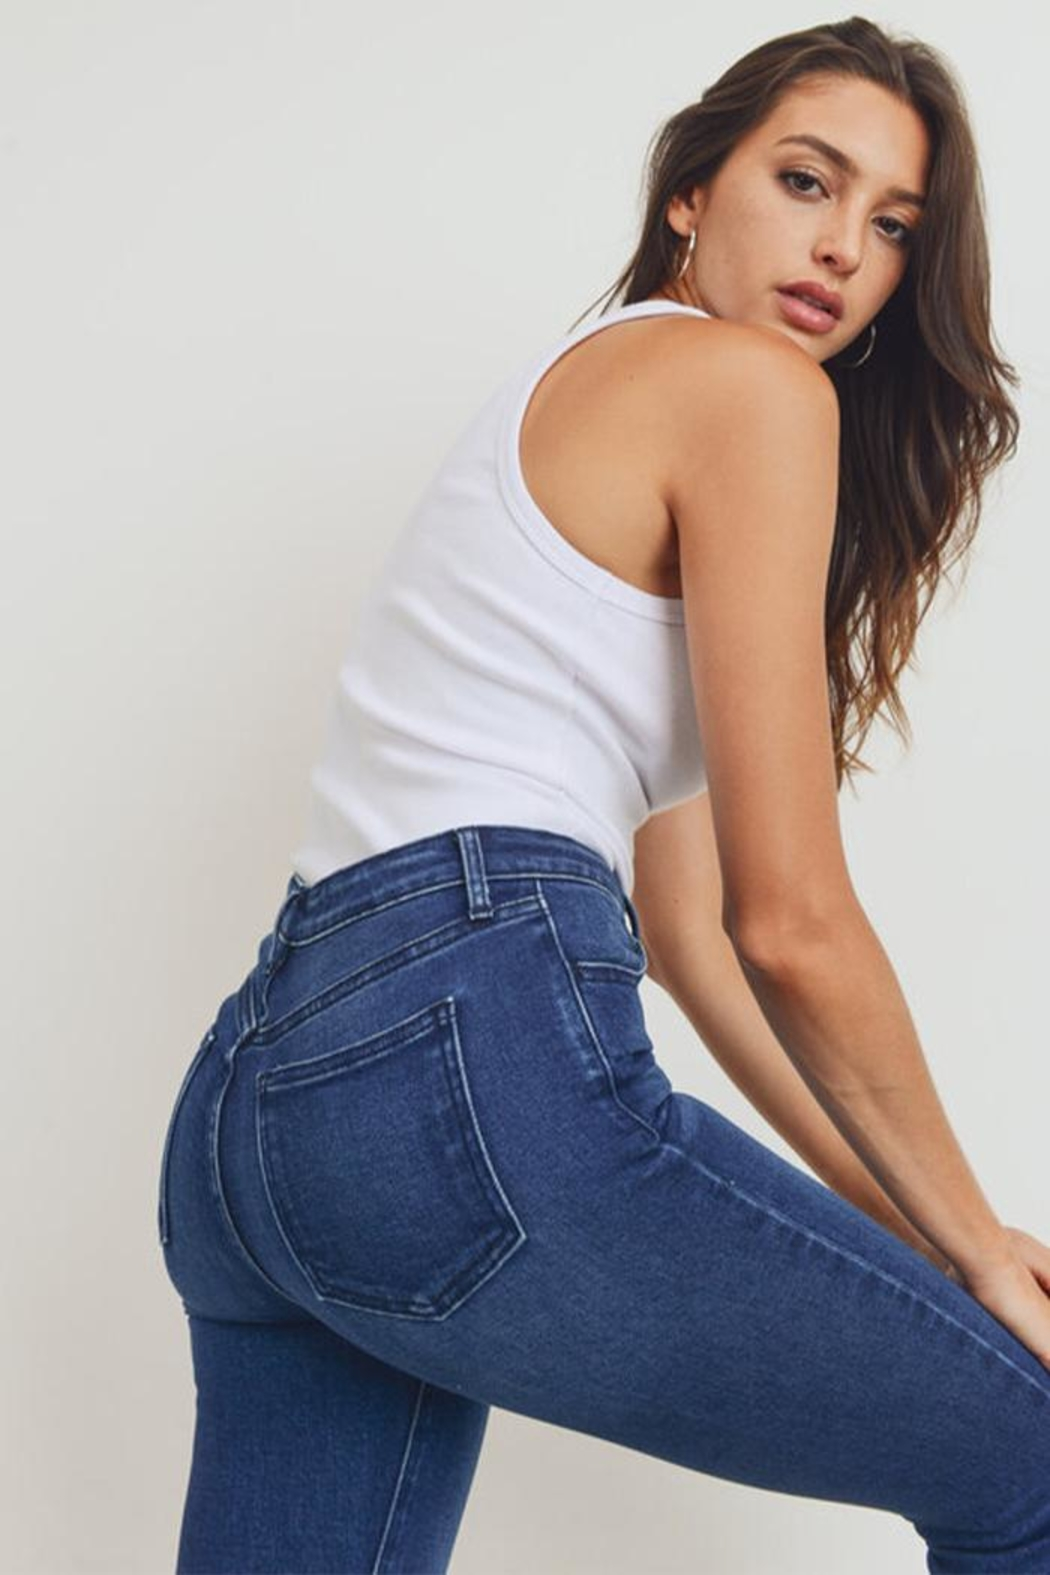 Just Panmaco Inc. Skinny Button-Up Jeans - Back Cropped Image